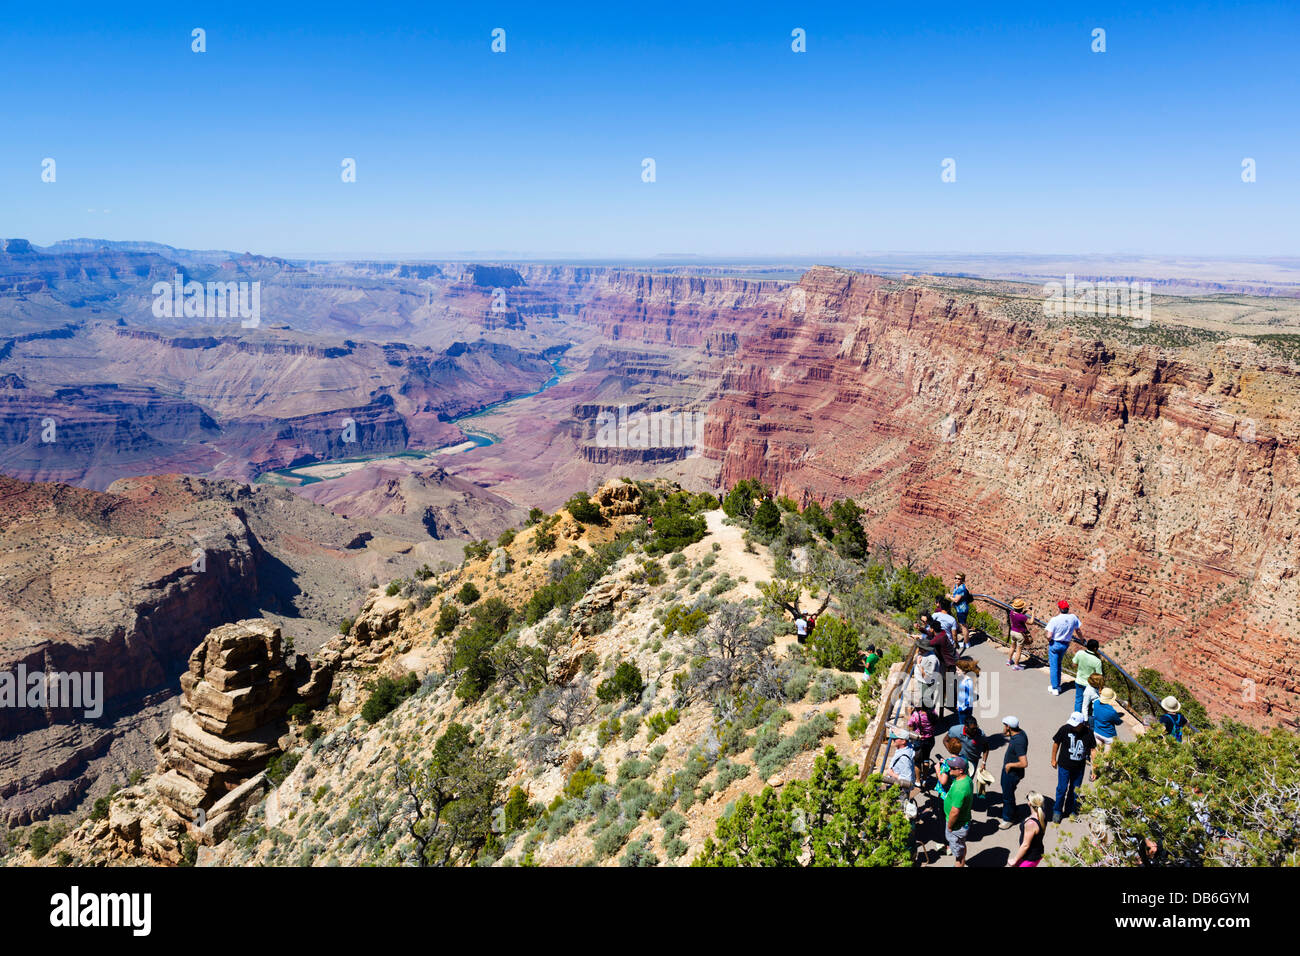 Tourists at Desert View Watchtower Lookout, South Rim, Grand Canyon National Park, Arizona, USA - Stock Image